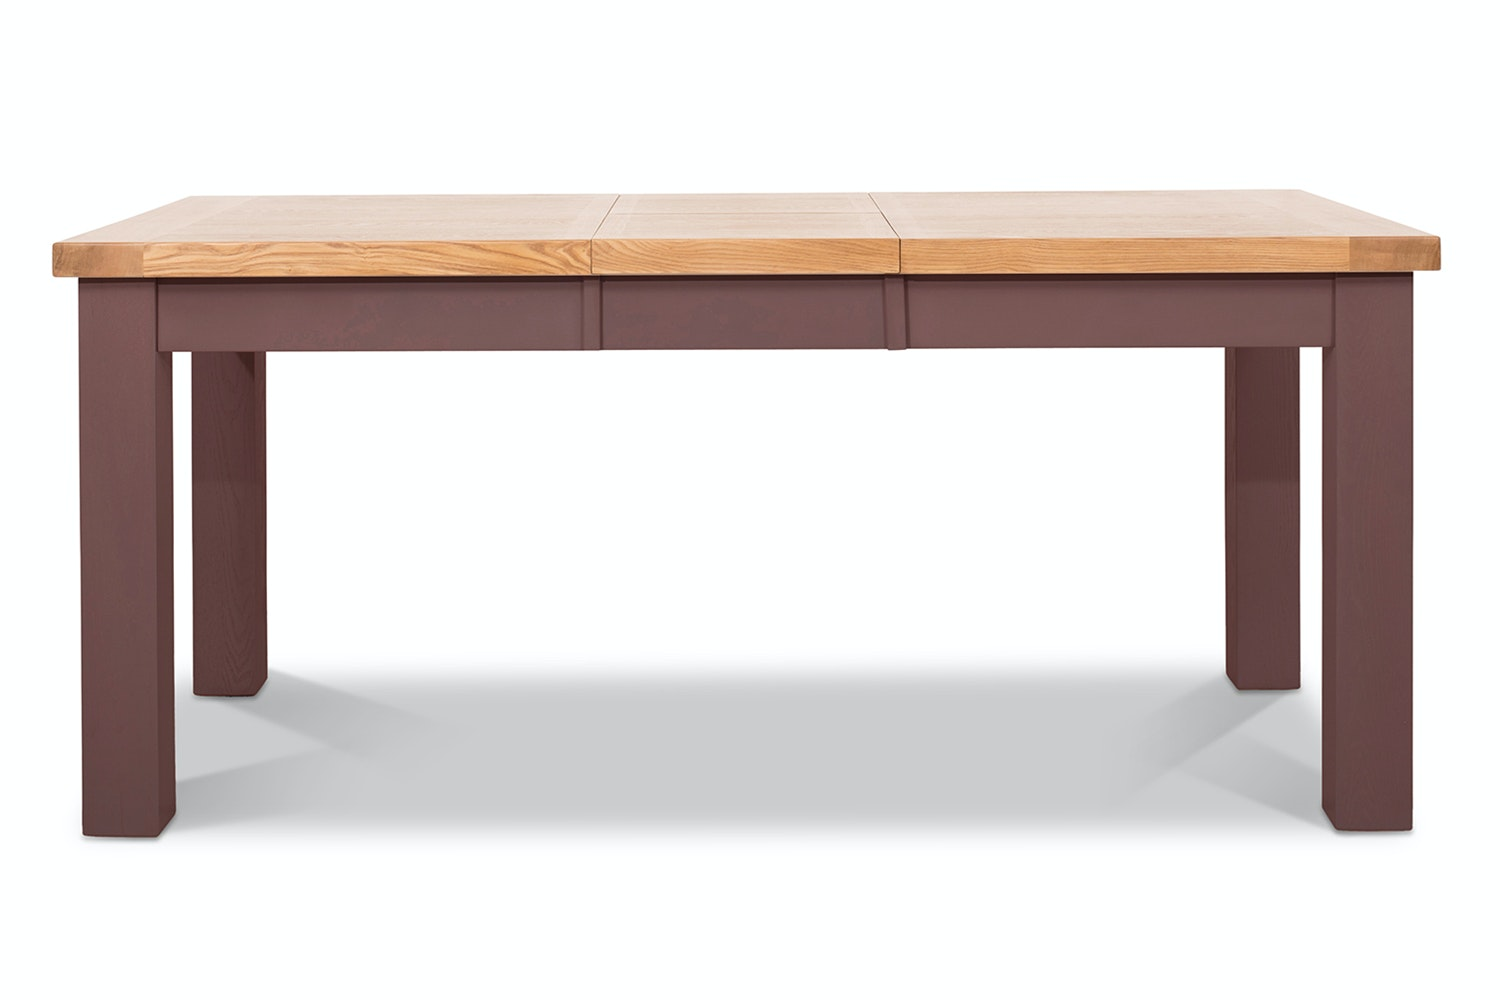 Harvest Extending Dining Table | Colourtrend | 140cm